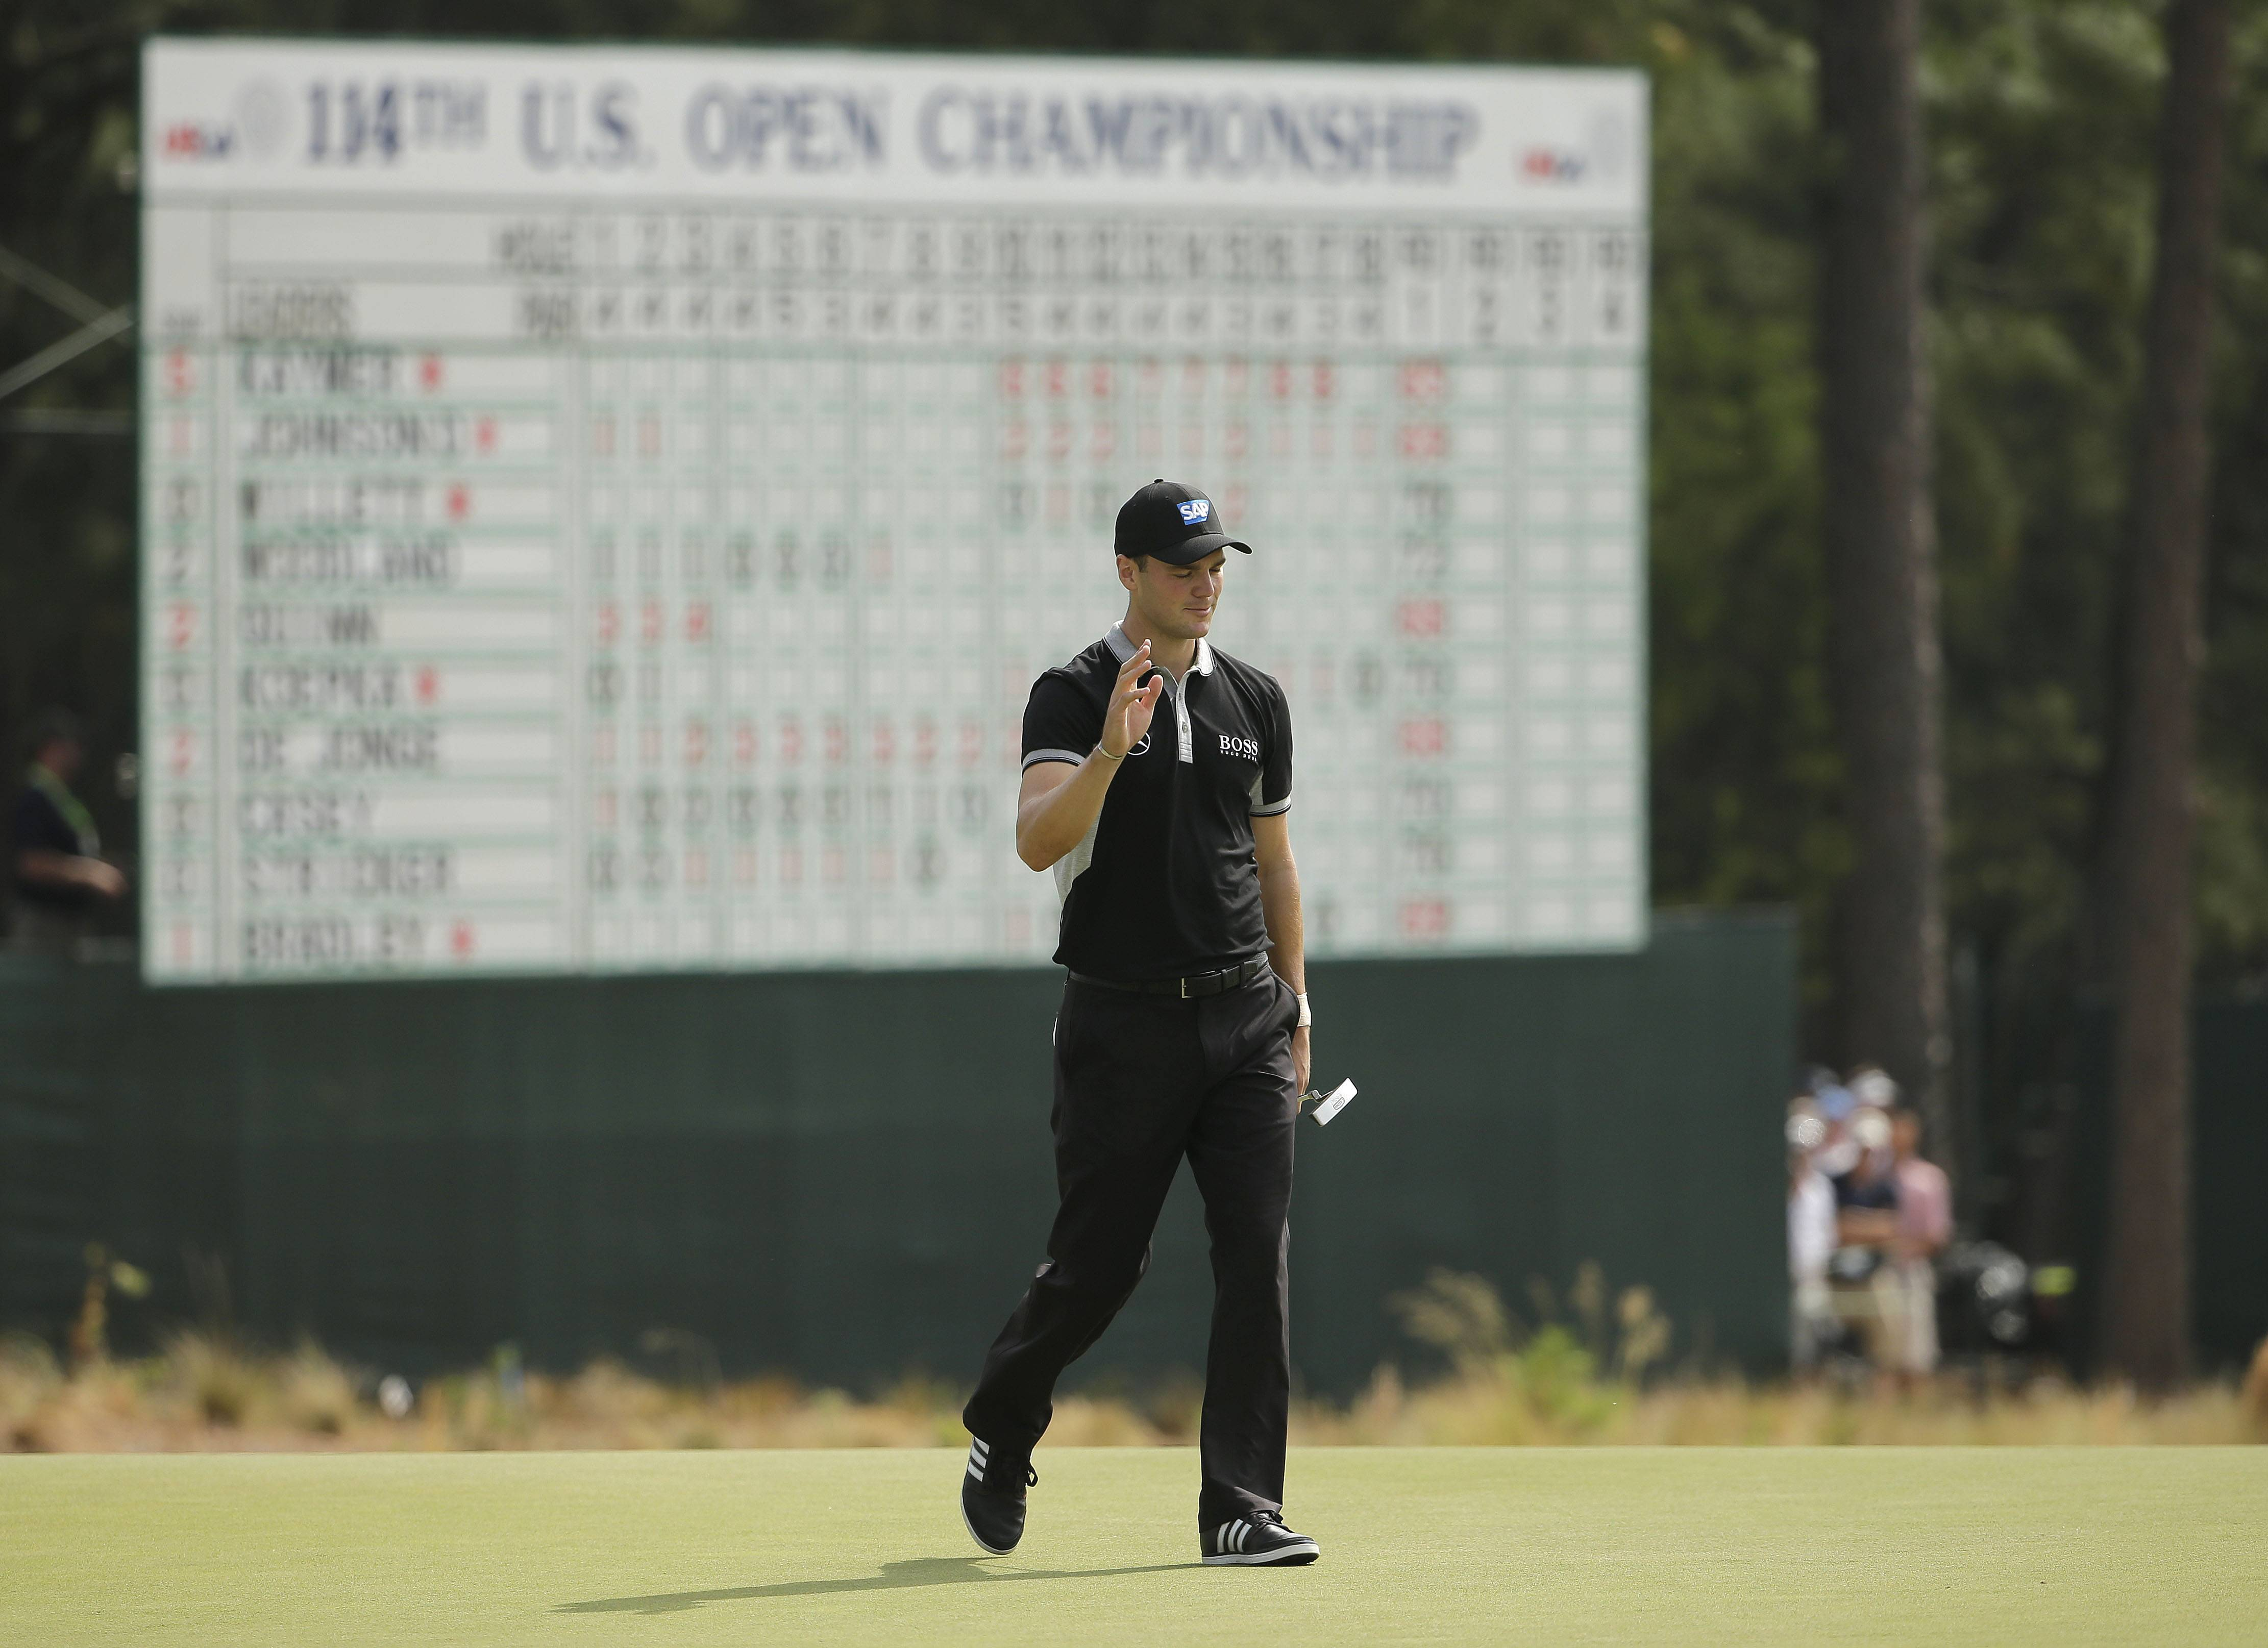 Martin Kaymer set the 36-hole scoring record at the U.S. Open on Friday with another 5-under 65 — this one without a single bogey — to build an early eight-shot lead and leave the rest of the field wondering if the 29-year-old German was playing a different course, or even a different tournament.